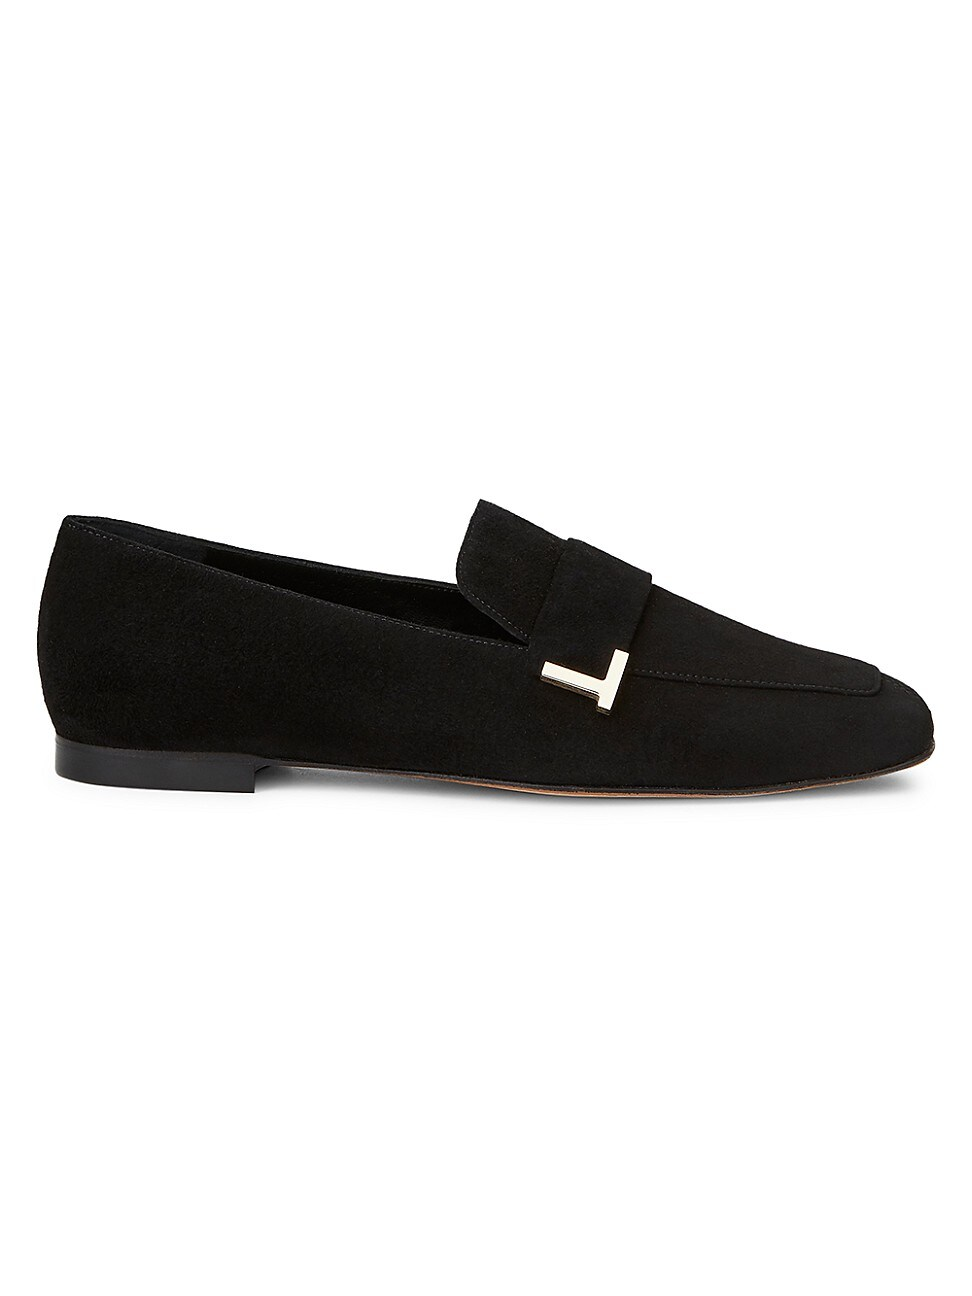 Lafayette 148 WOMEN'S EVE SQUARE-TOE SUEDE LOAFERS